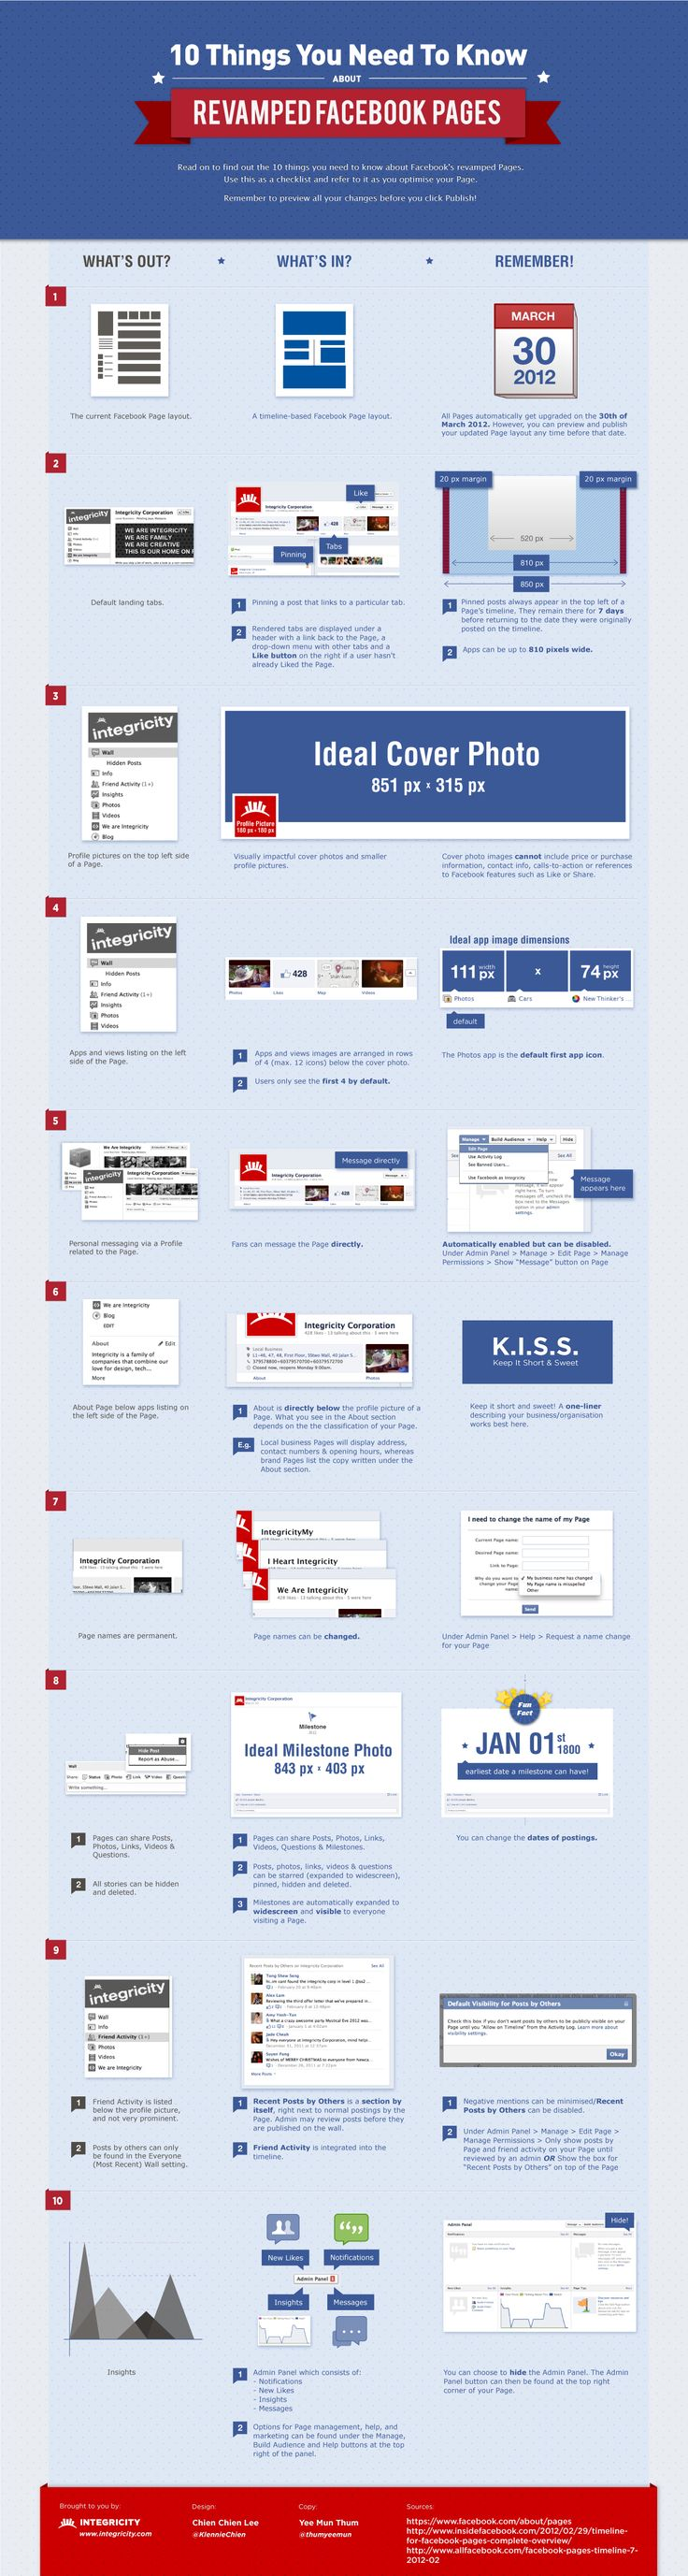 [Infographic] The updated Facebook page - 10 things you need to know